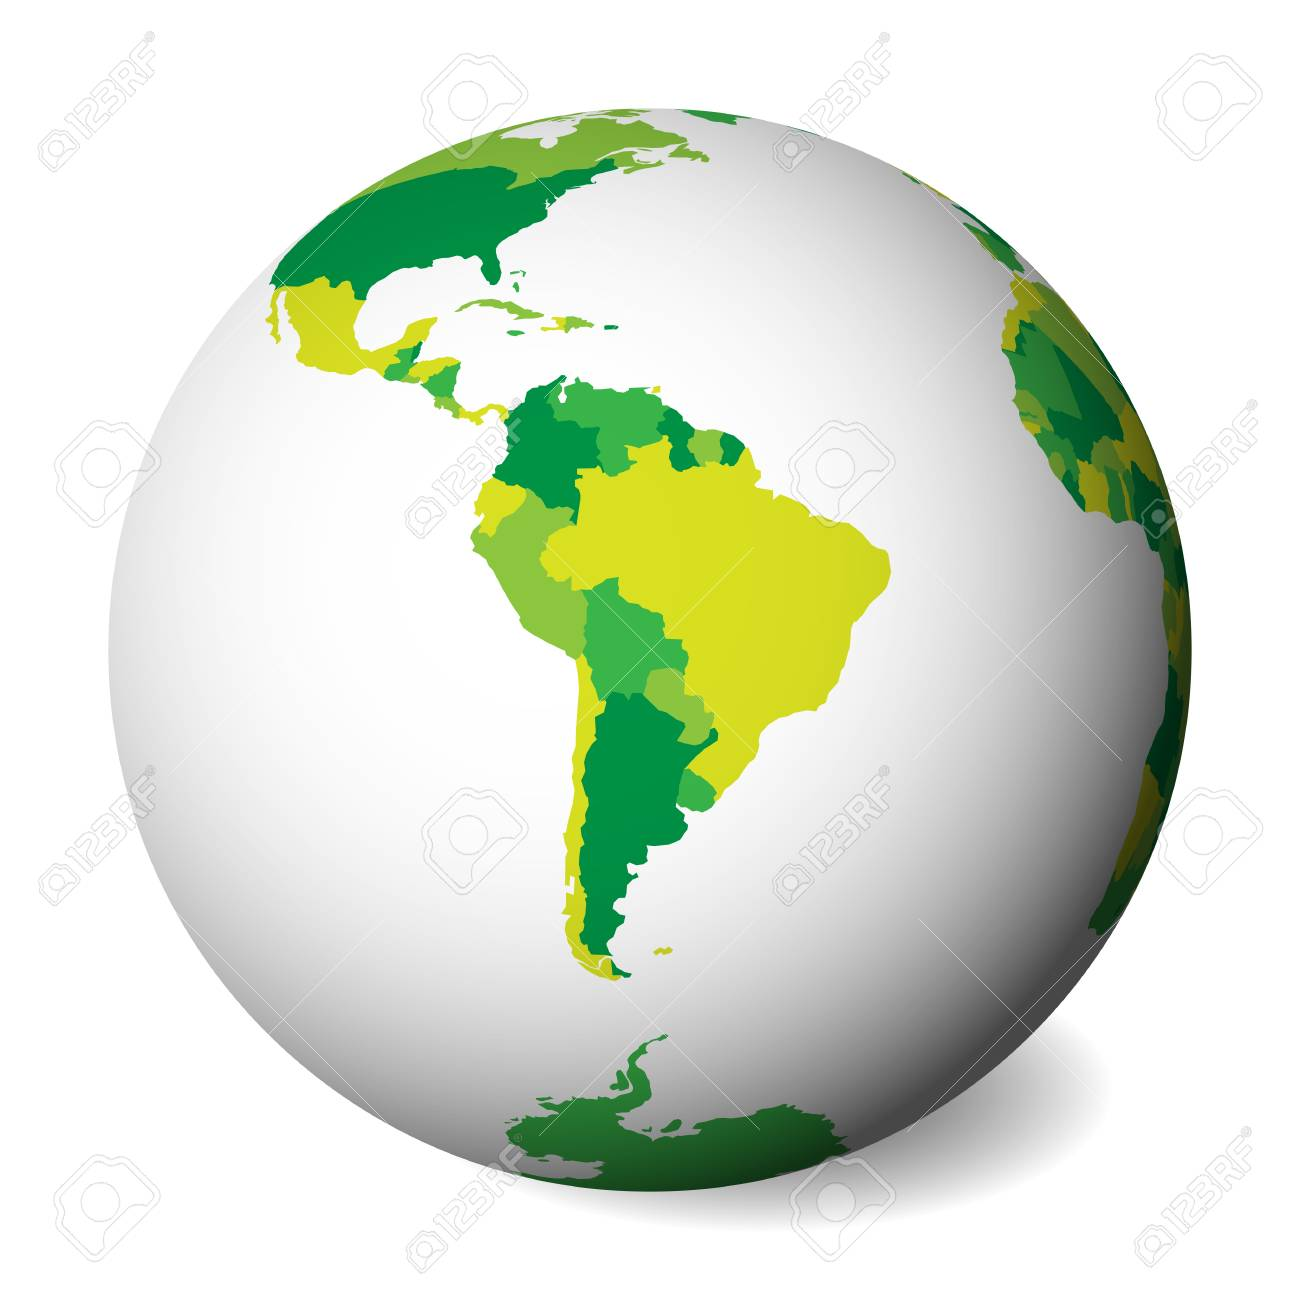 Blank Political Map Of South America 3d Earth Globe With Green